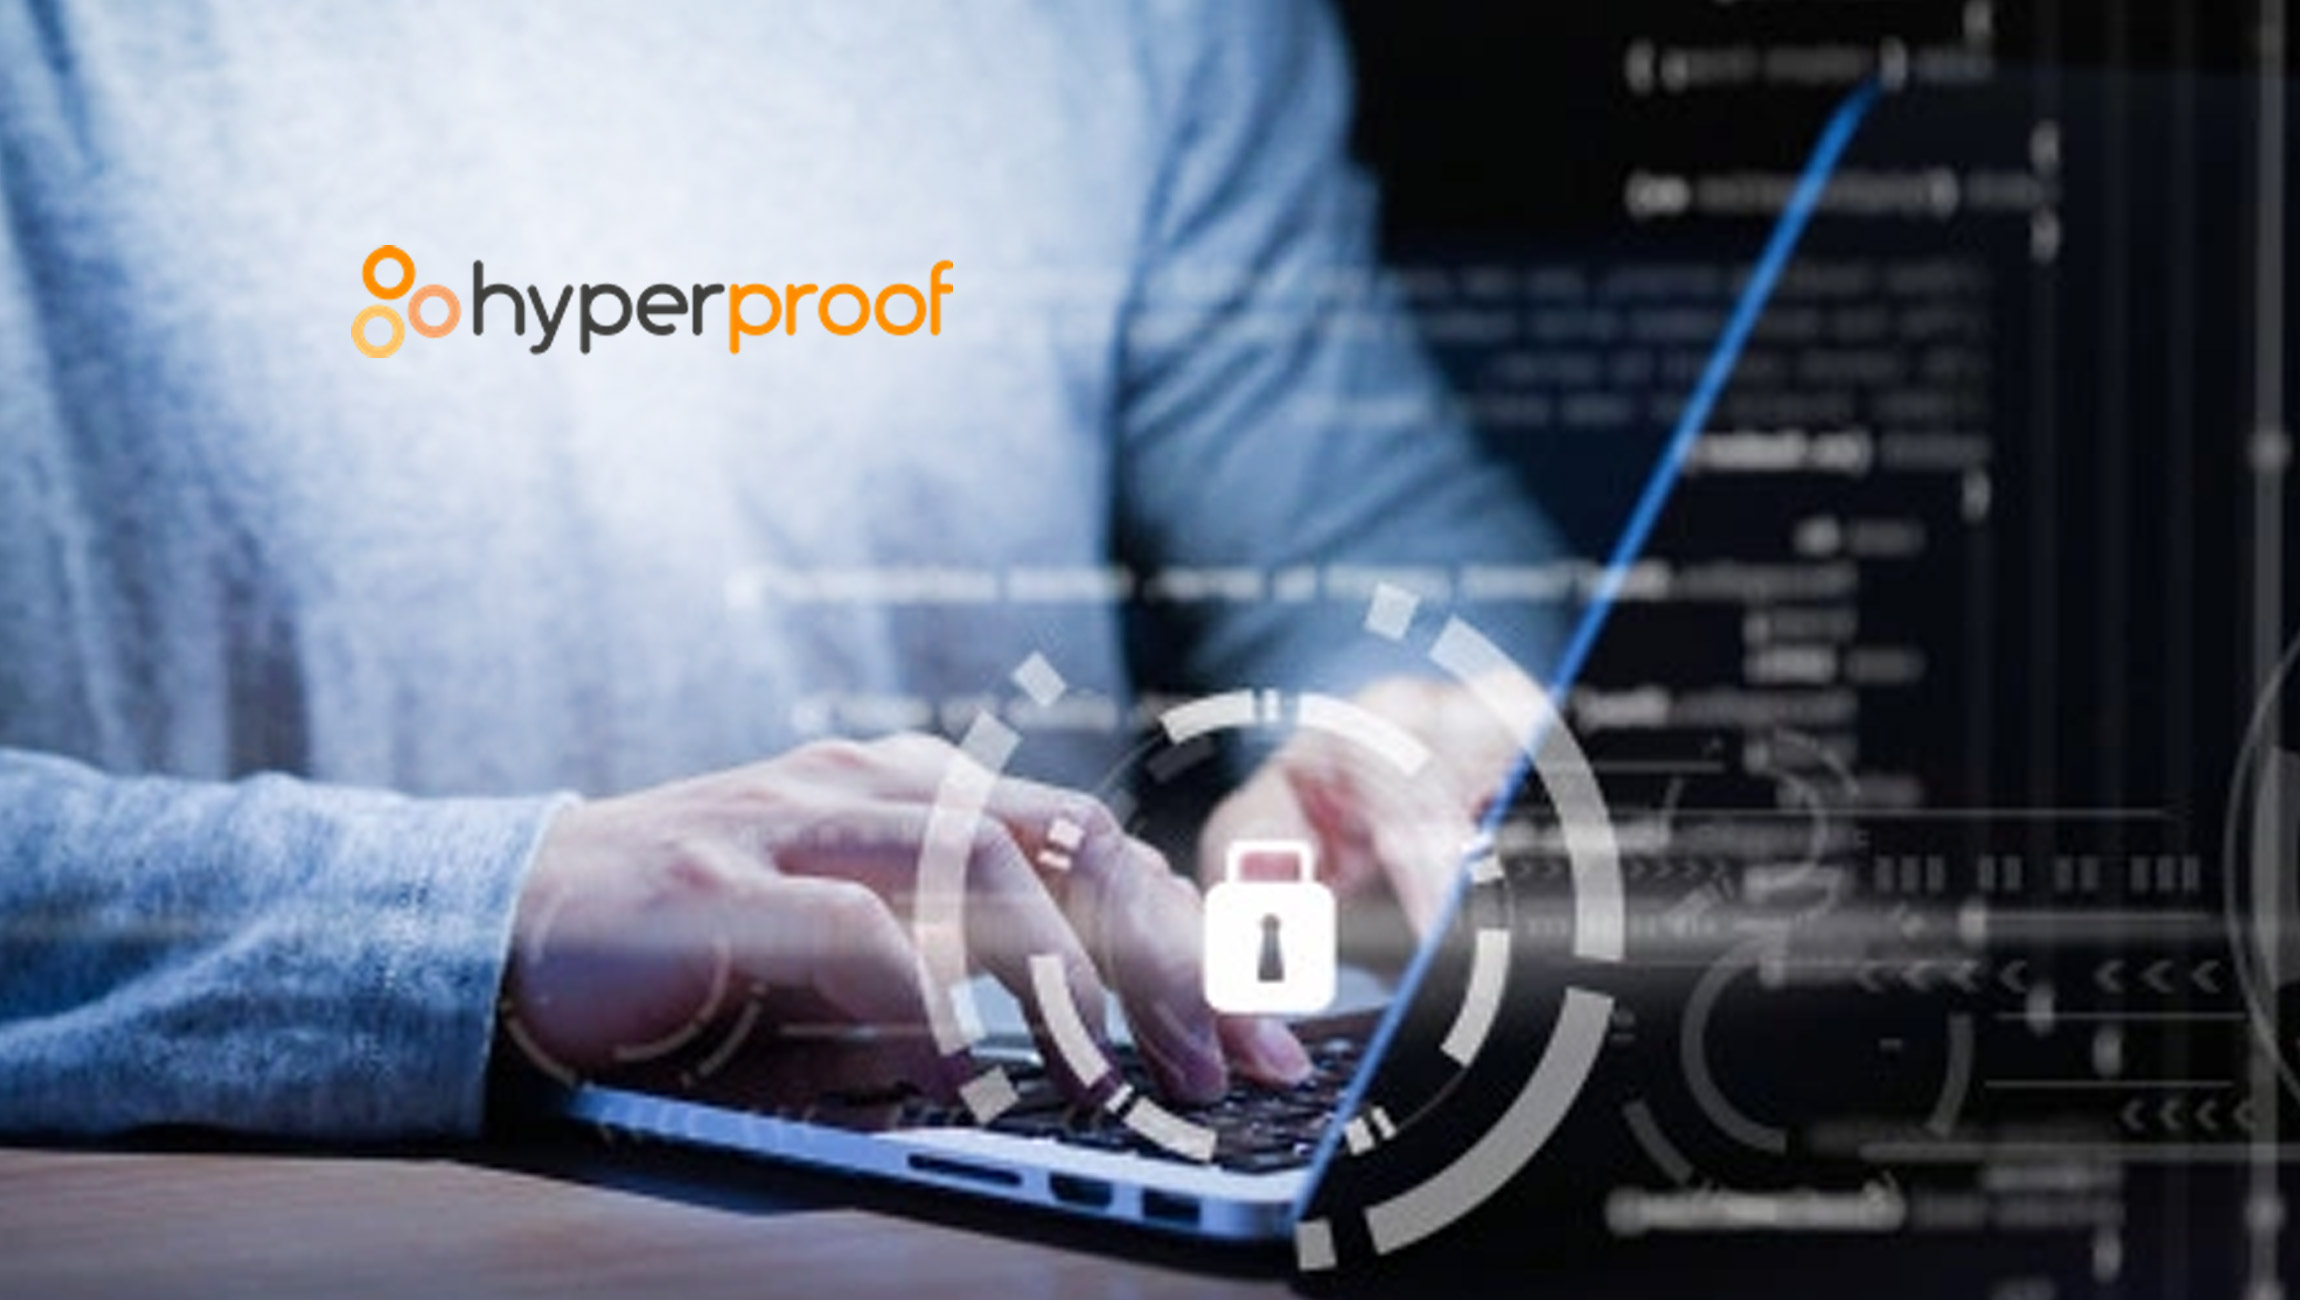 Hyperproof-Successfully-Completes-SOC-2-Type-2-Examination-and-HIPAA-Security-Compliance-Assessment